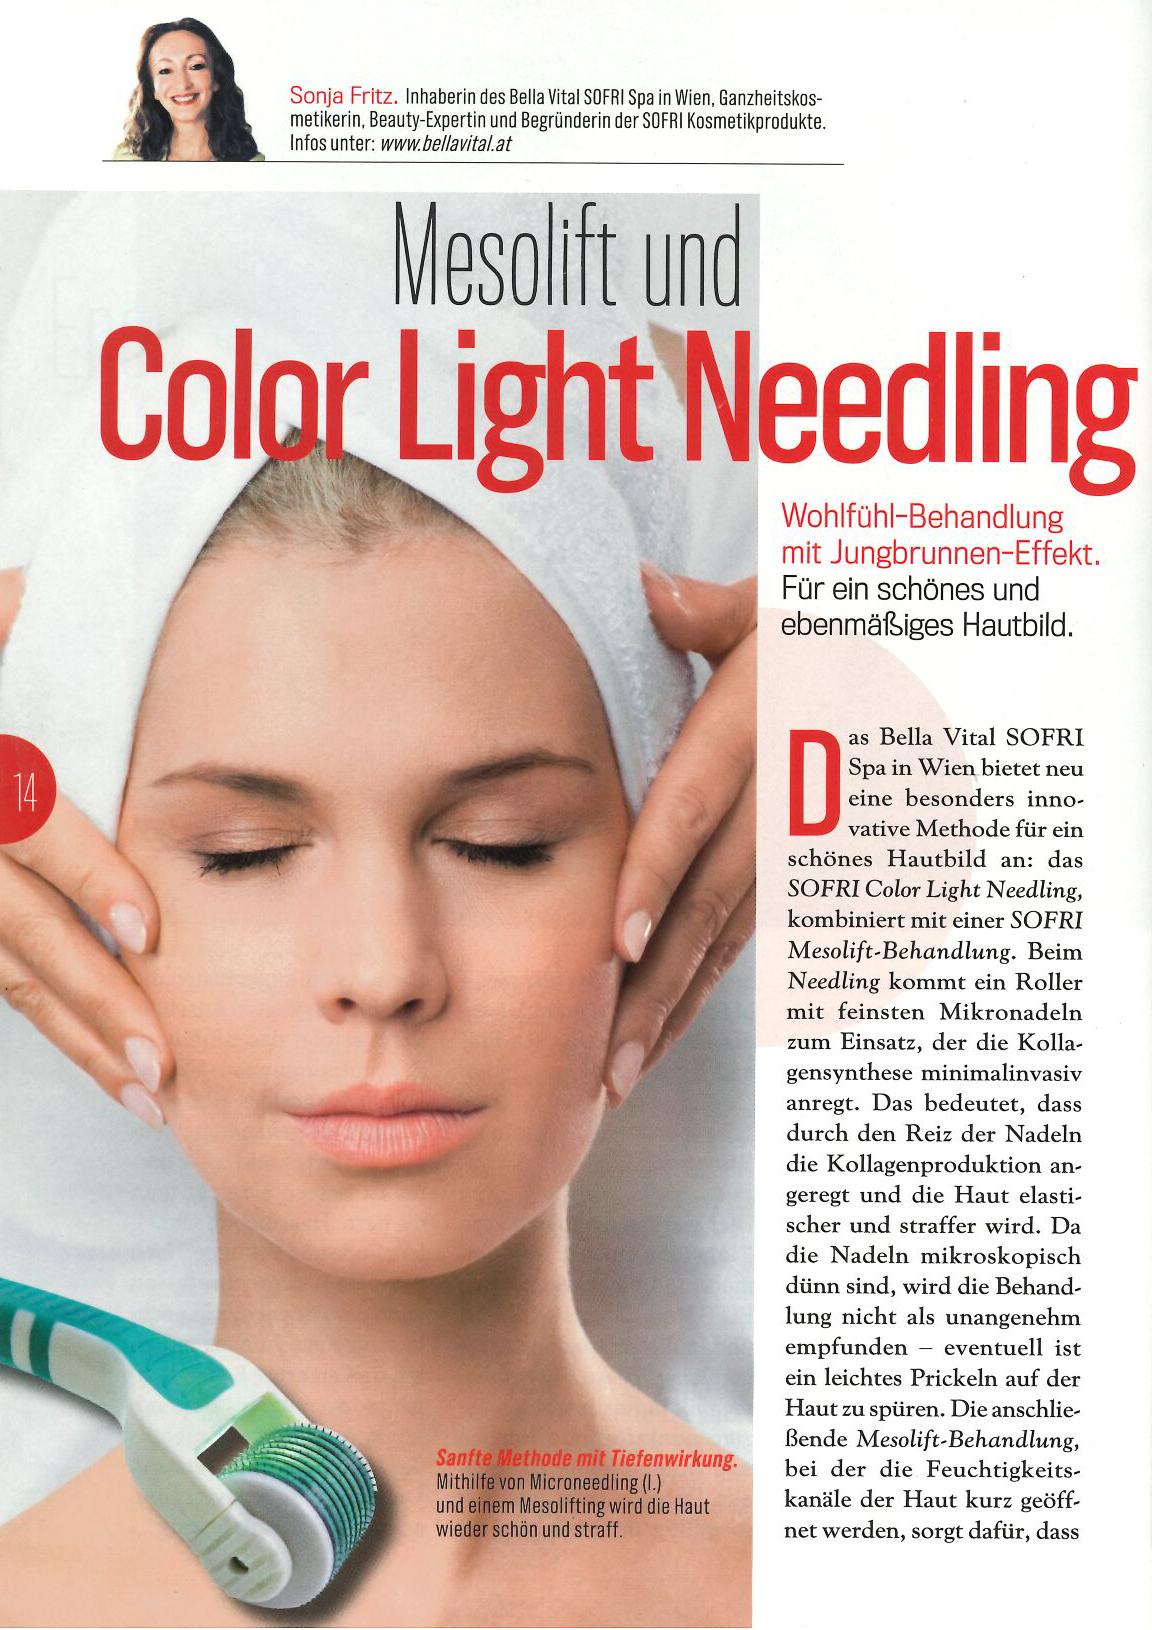 Mesolift und Color Light Needling